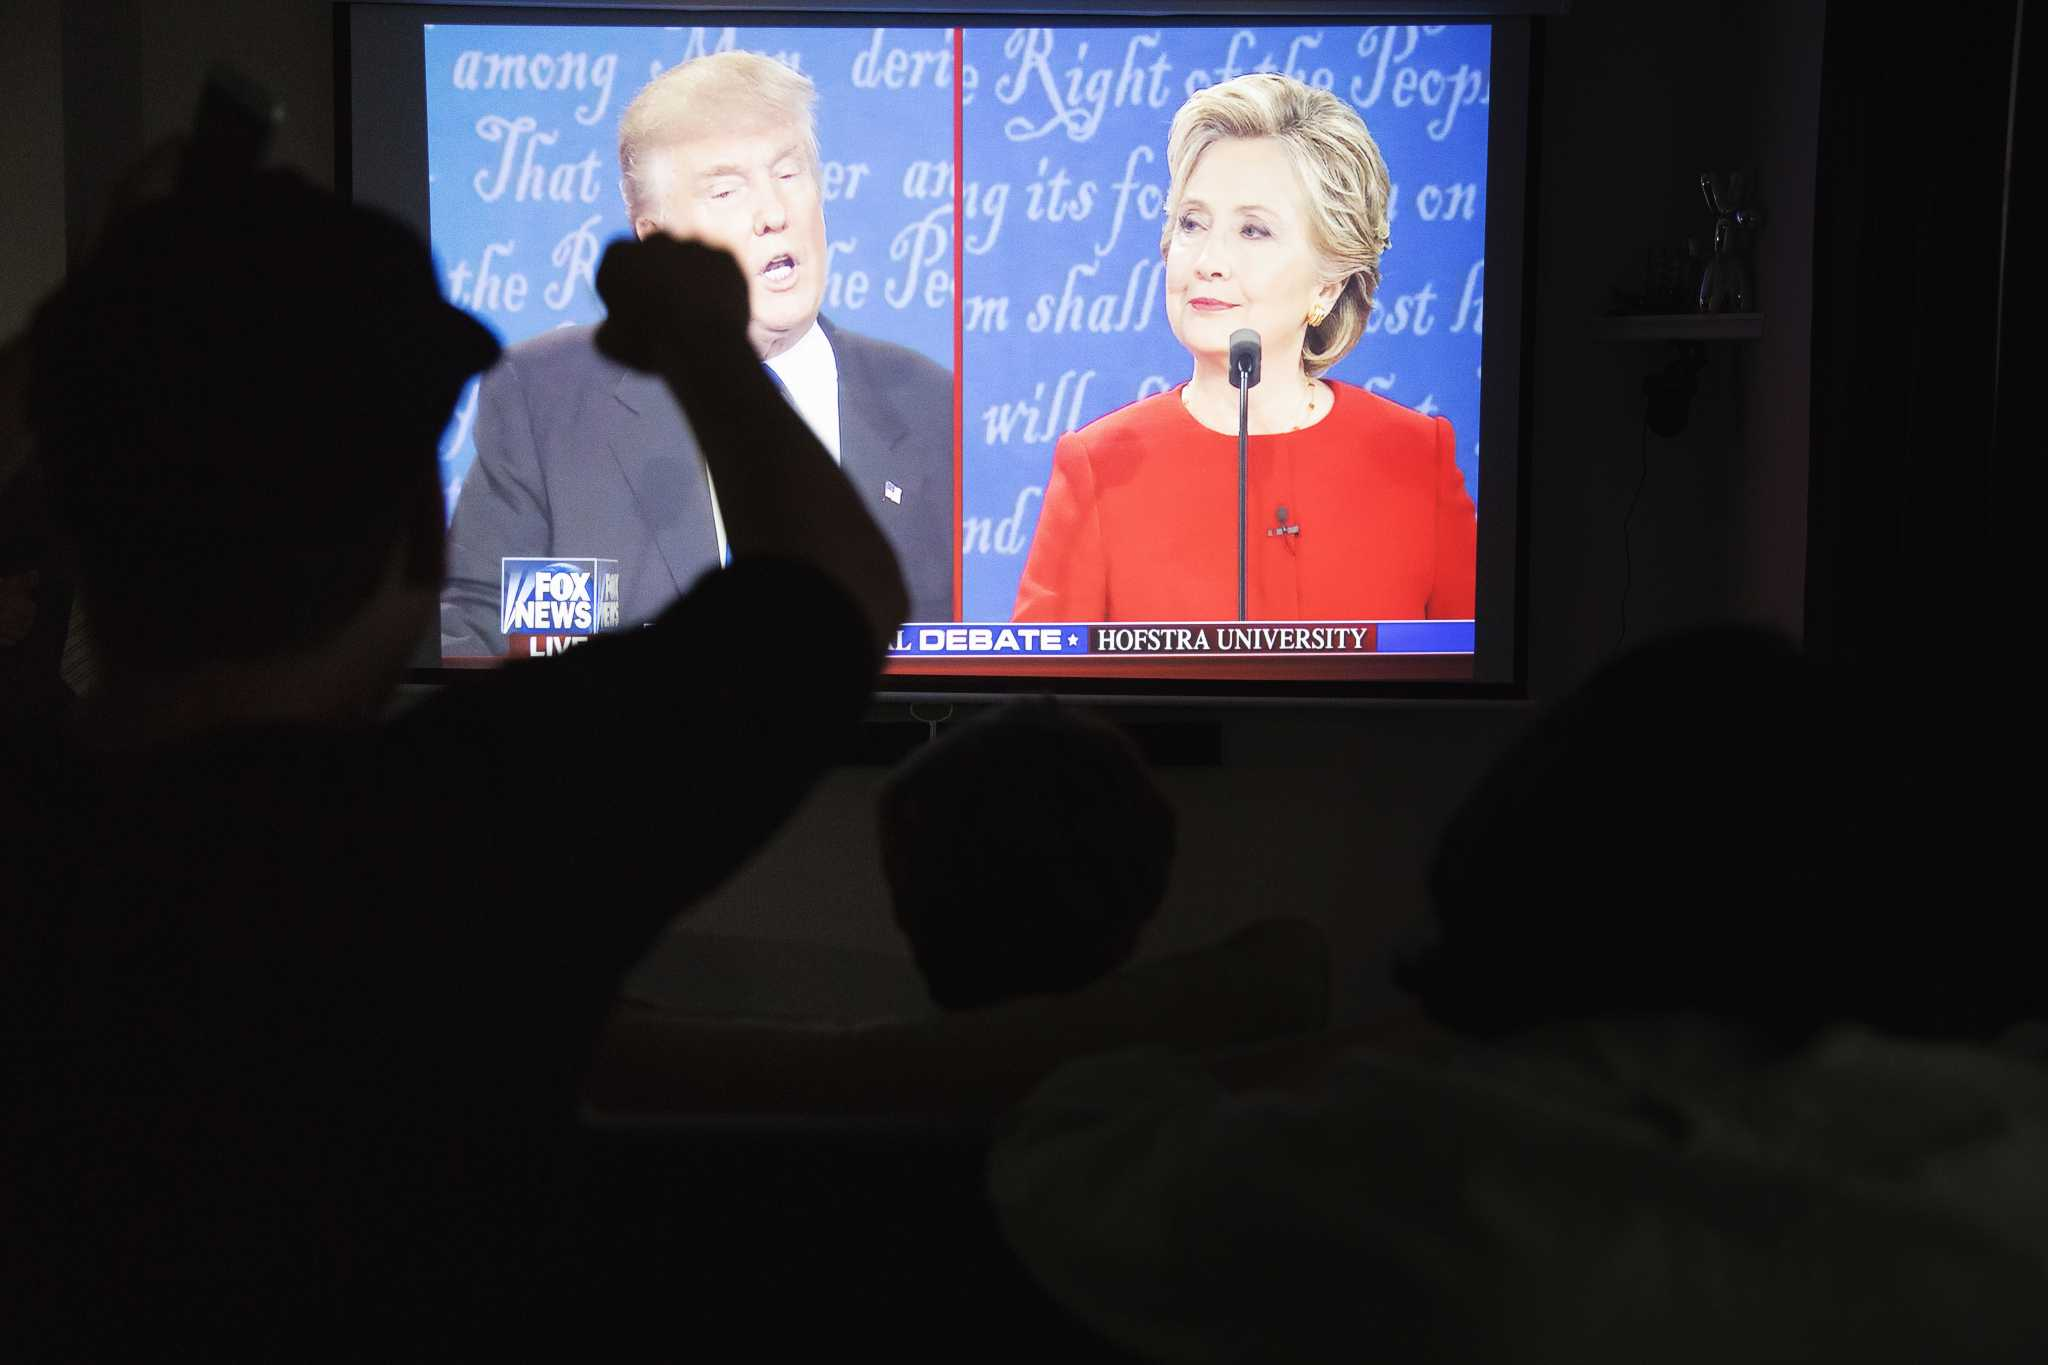 Members of SF State republican student union watch the first presidential debate between Donald Trump and Hillary Clinton in a house at Parkmerced on Monday, Sept. 26, 2016.